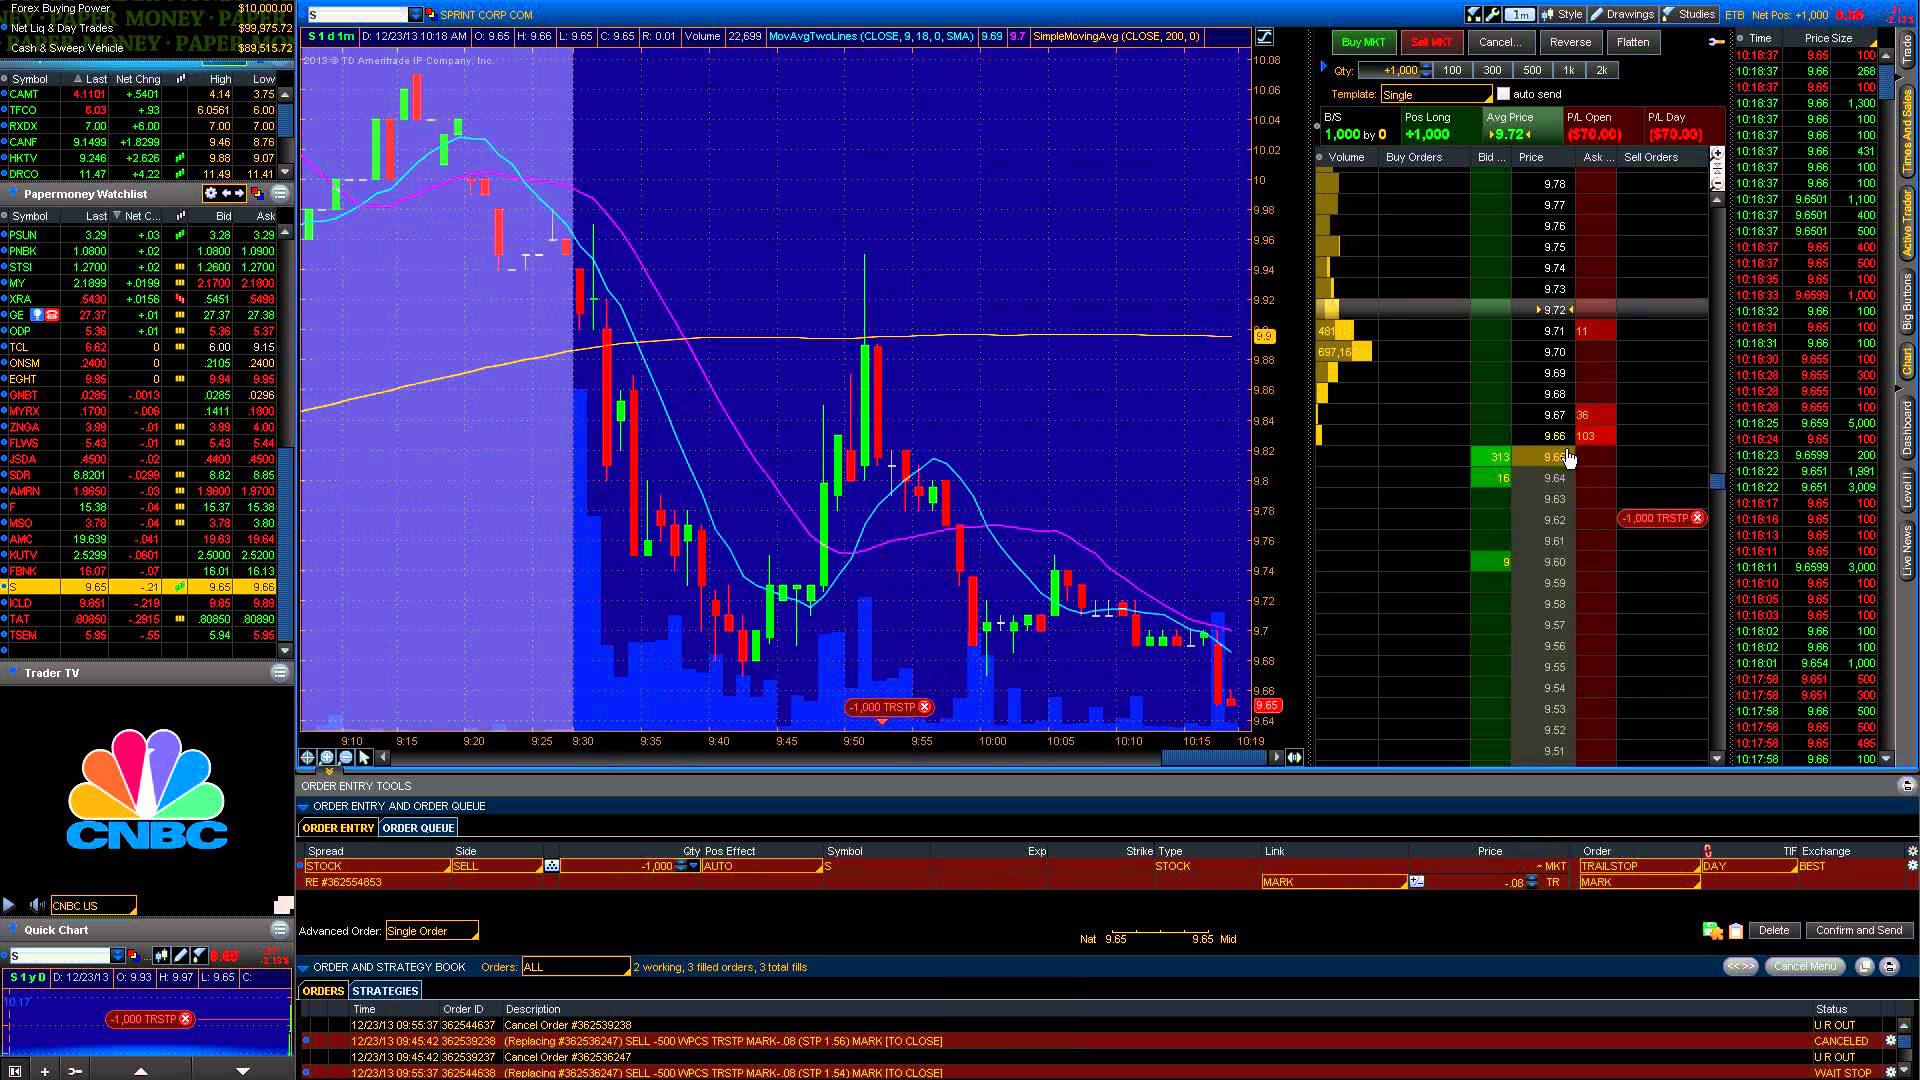 Stock Market Live Day Trading – What are Trailing Stops?